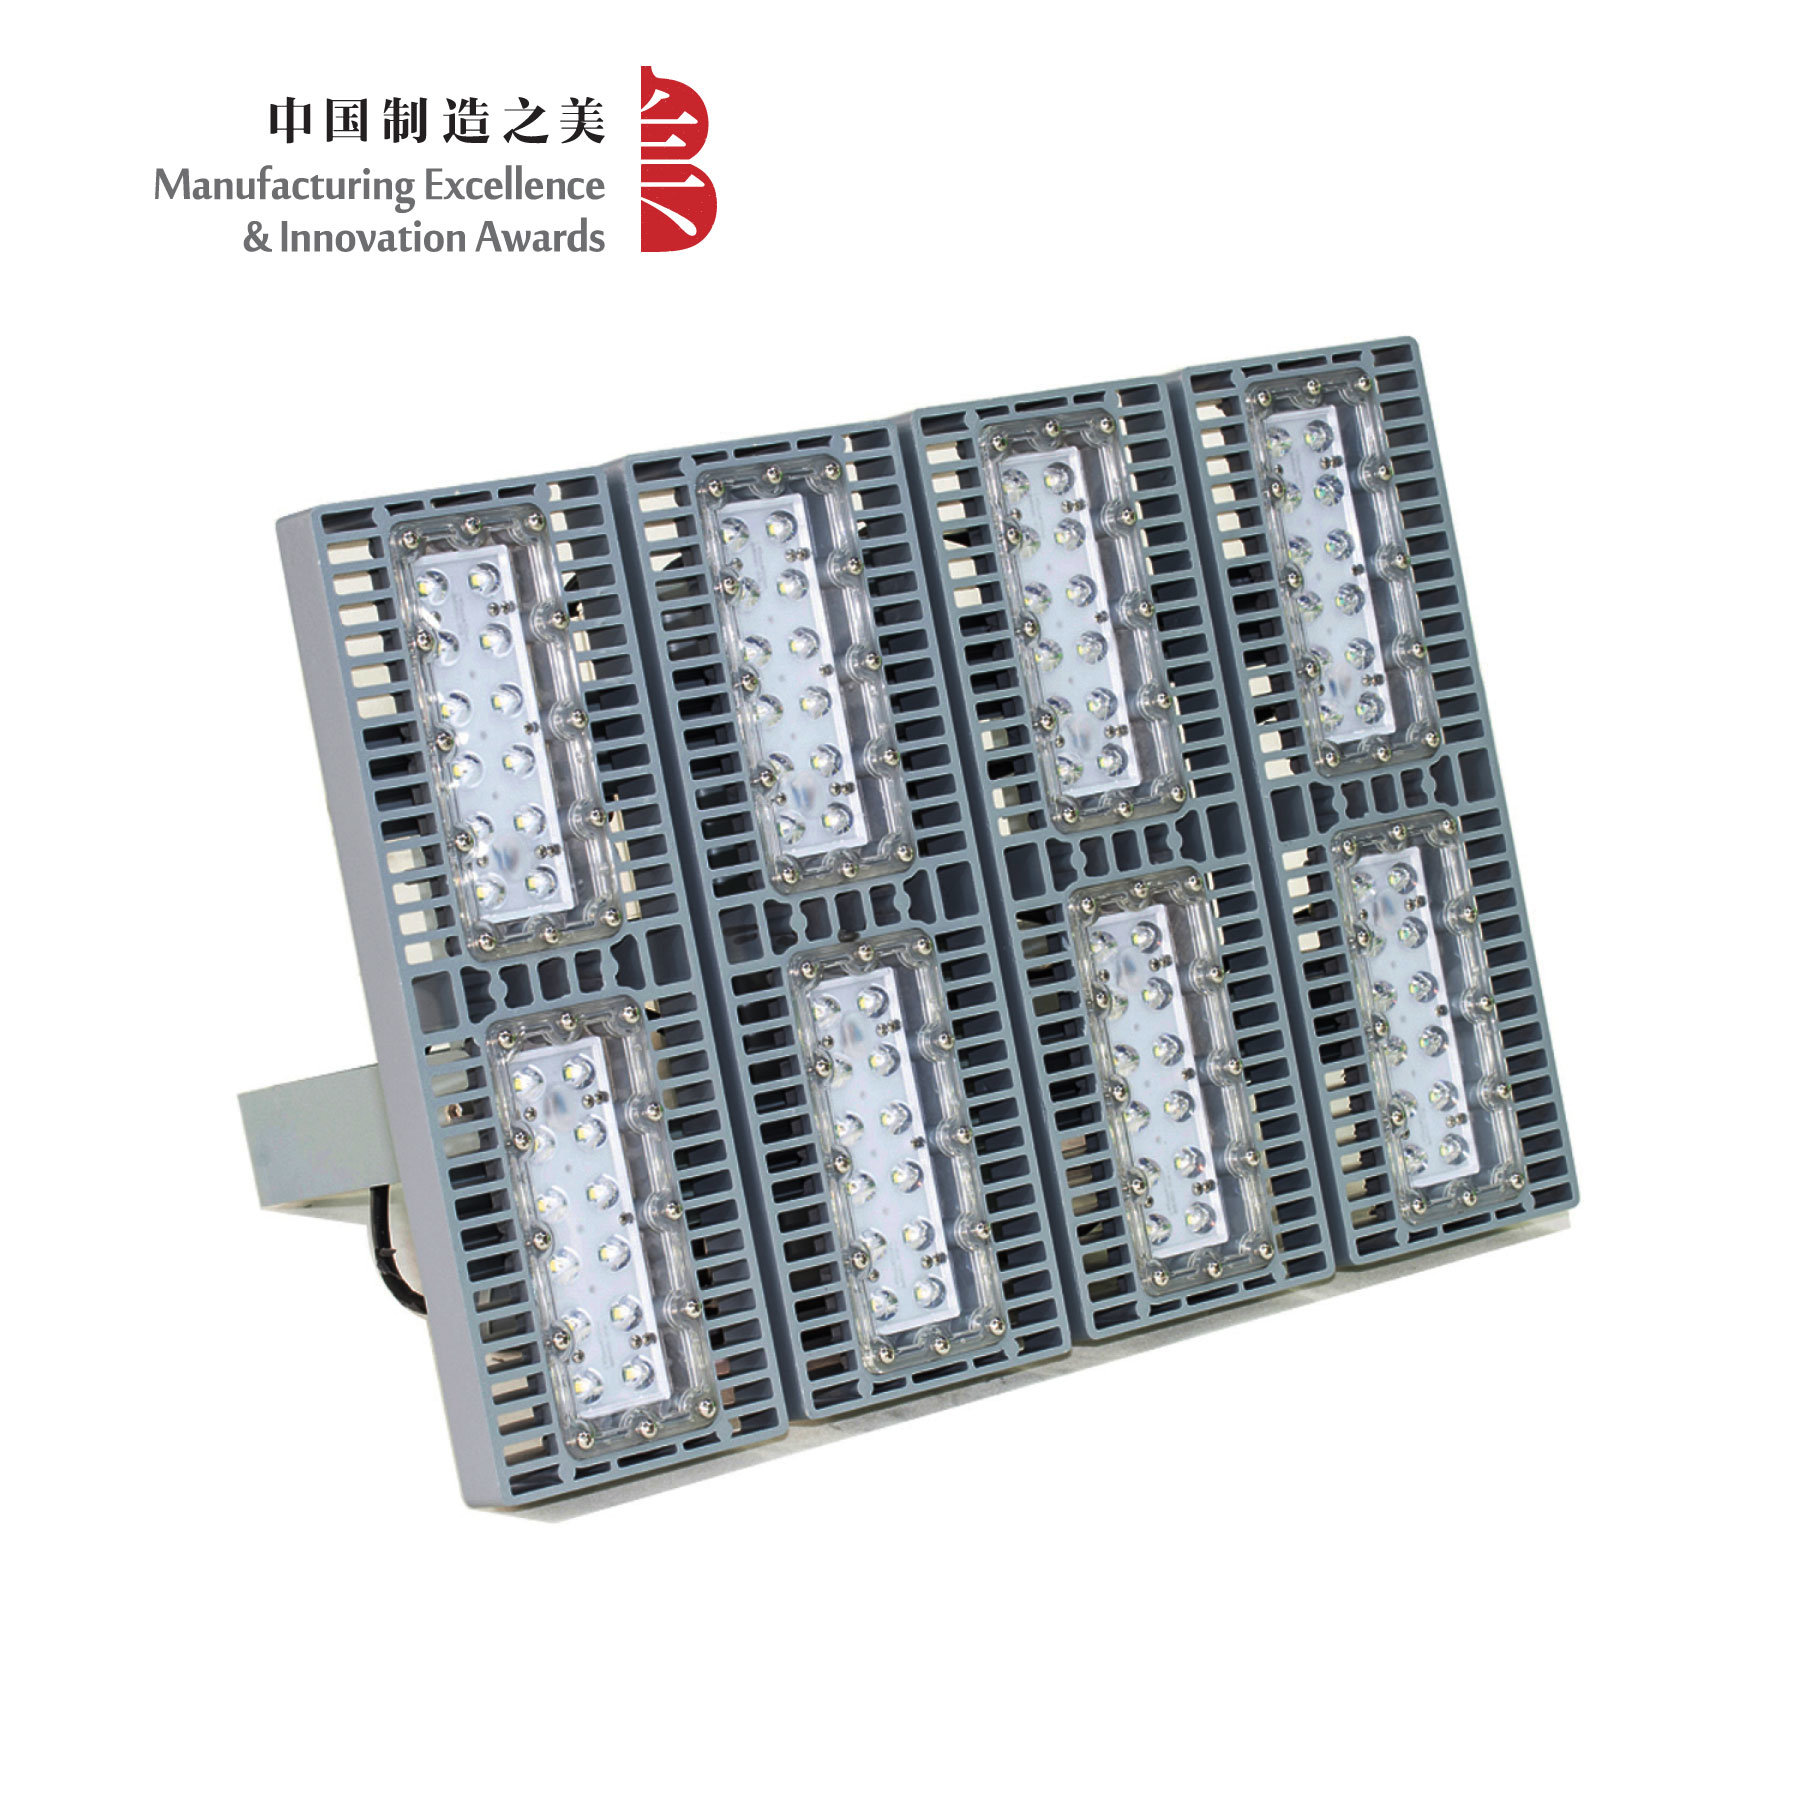 80W-660W LED Outdoor High Bay/Flood Light (BTZ 220/80 60 Y W)